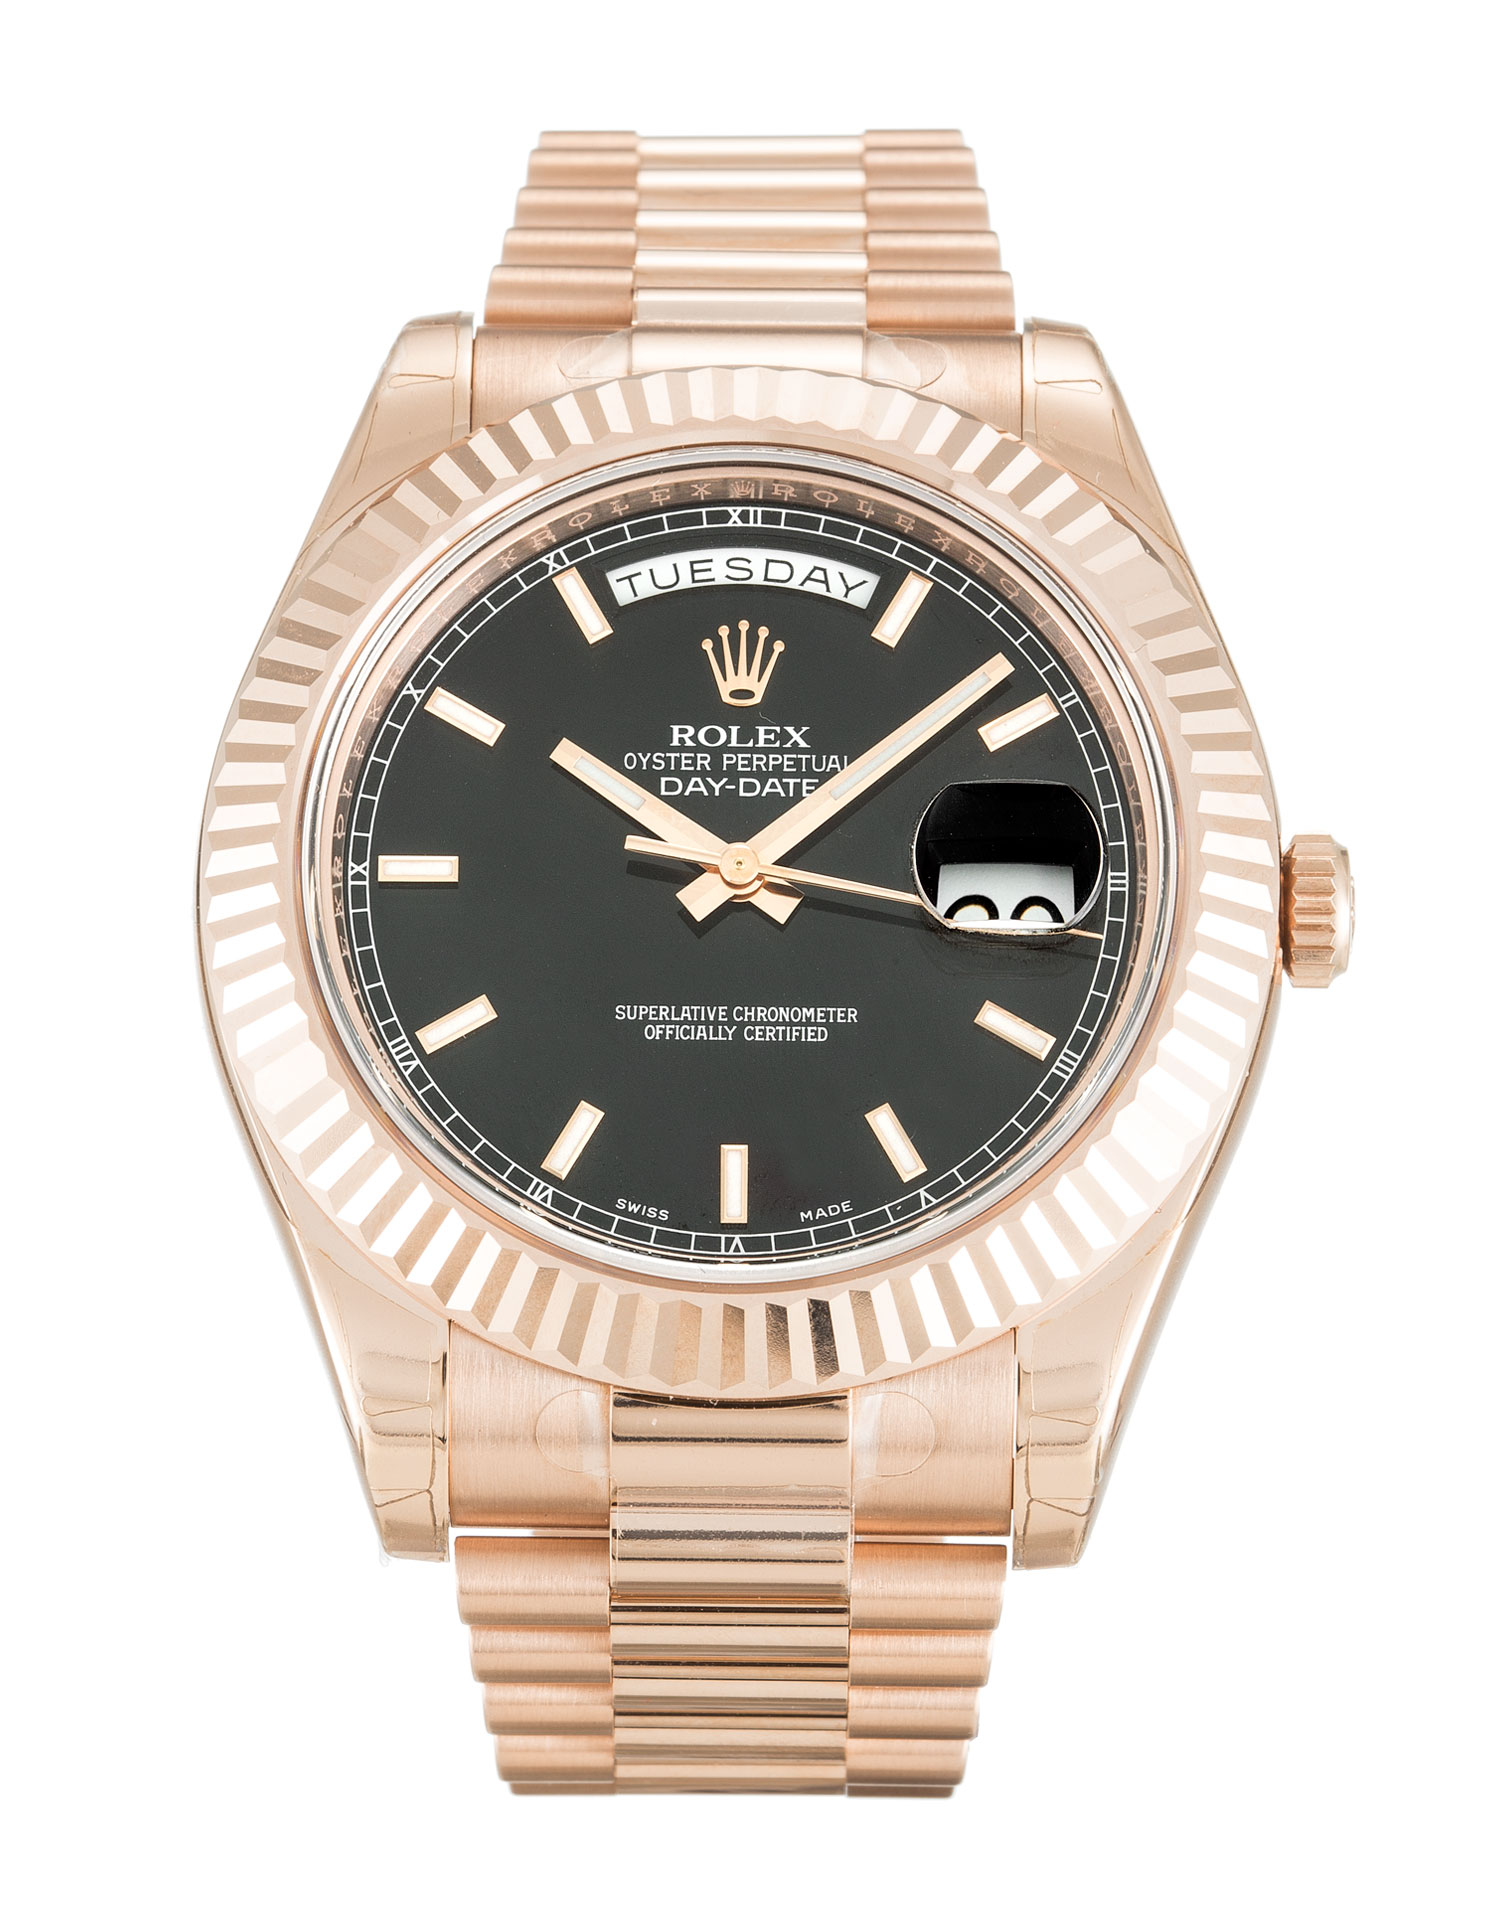 Rolex Day-date Ii 218235 Mens 41 Mm Rose Gold Case Automatic Movement – iapac.to